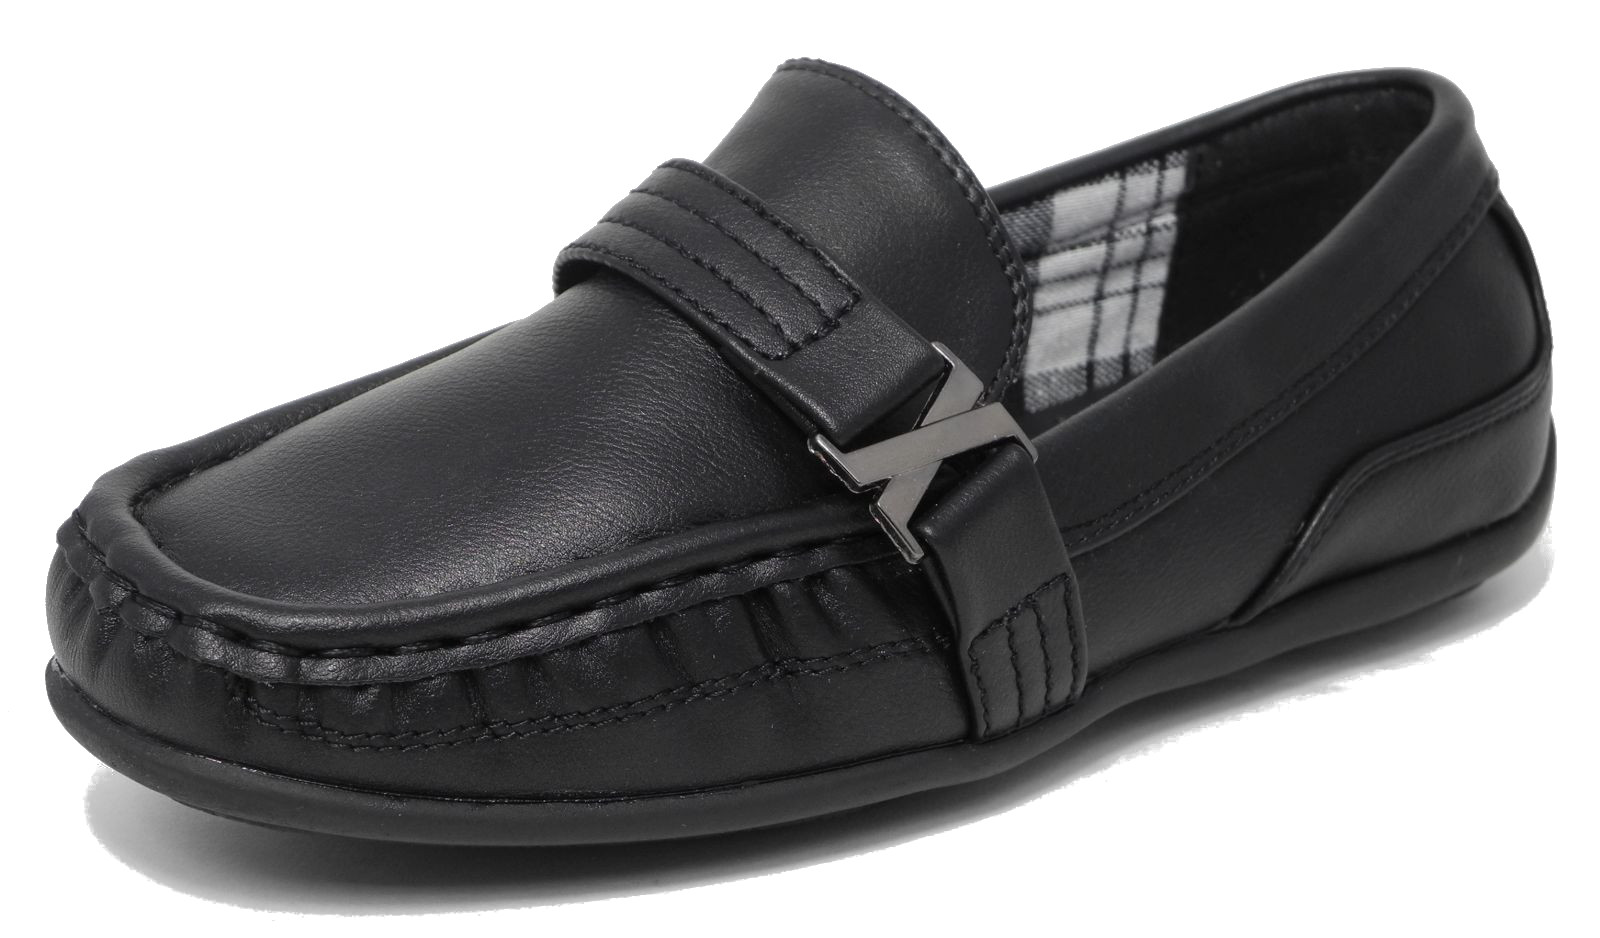 Boys Loafers Sale: Save Up to 25% Off! Shop truedfil3gz.gq's huge selection of Loafers for Boys - Over 60 styles available. FREE Shipping & Exchanges, and a % price guarantee!